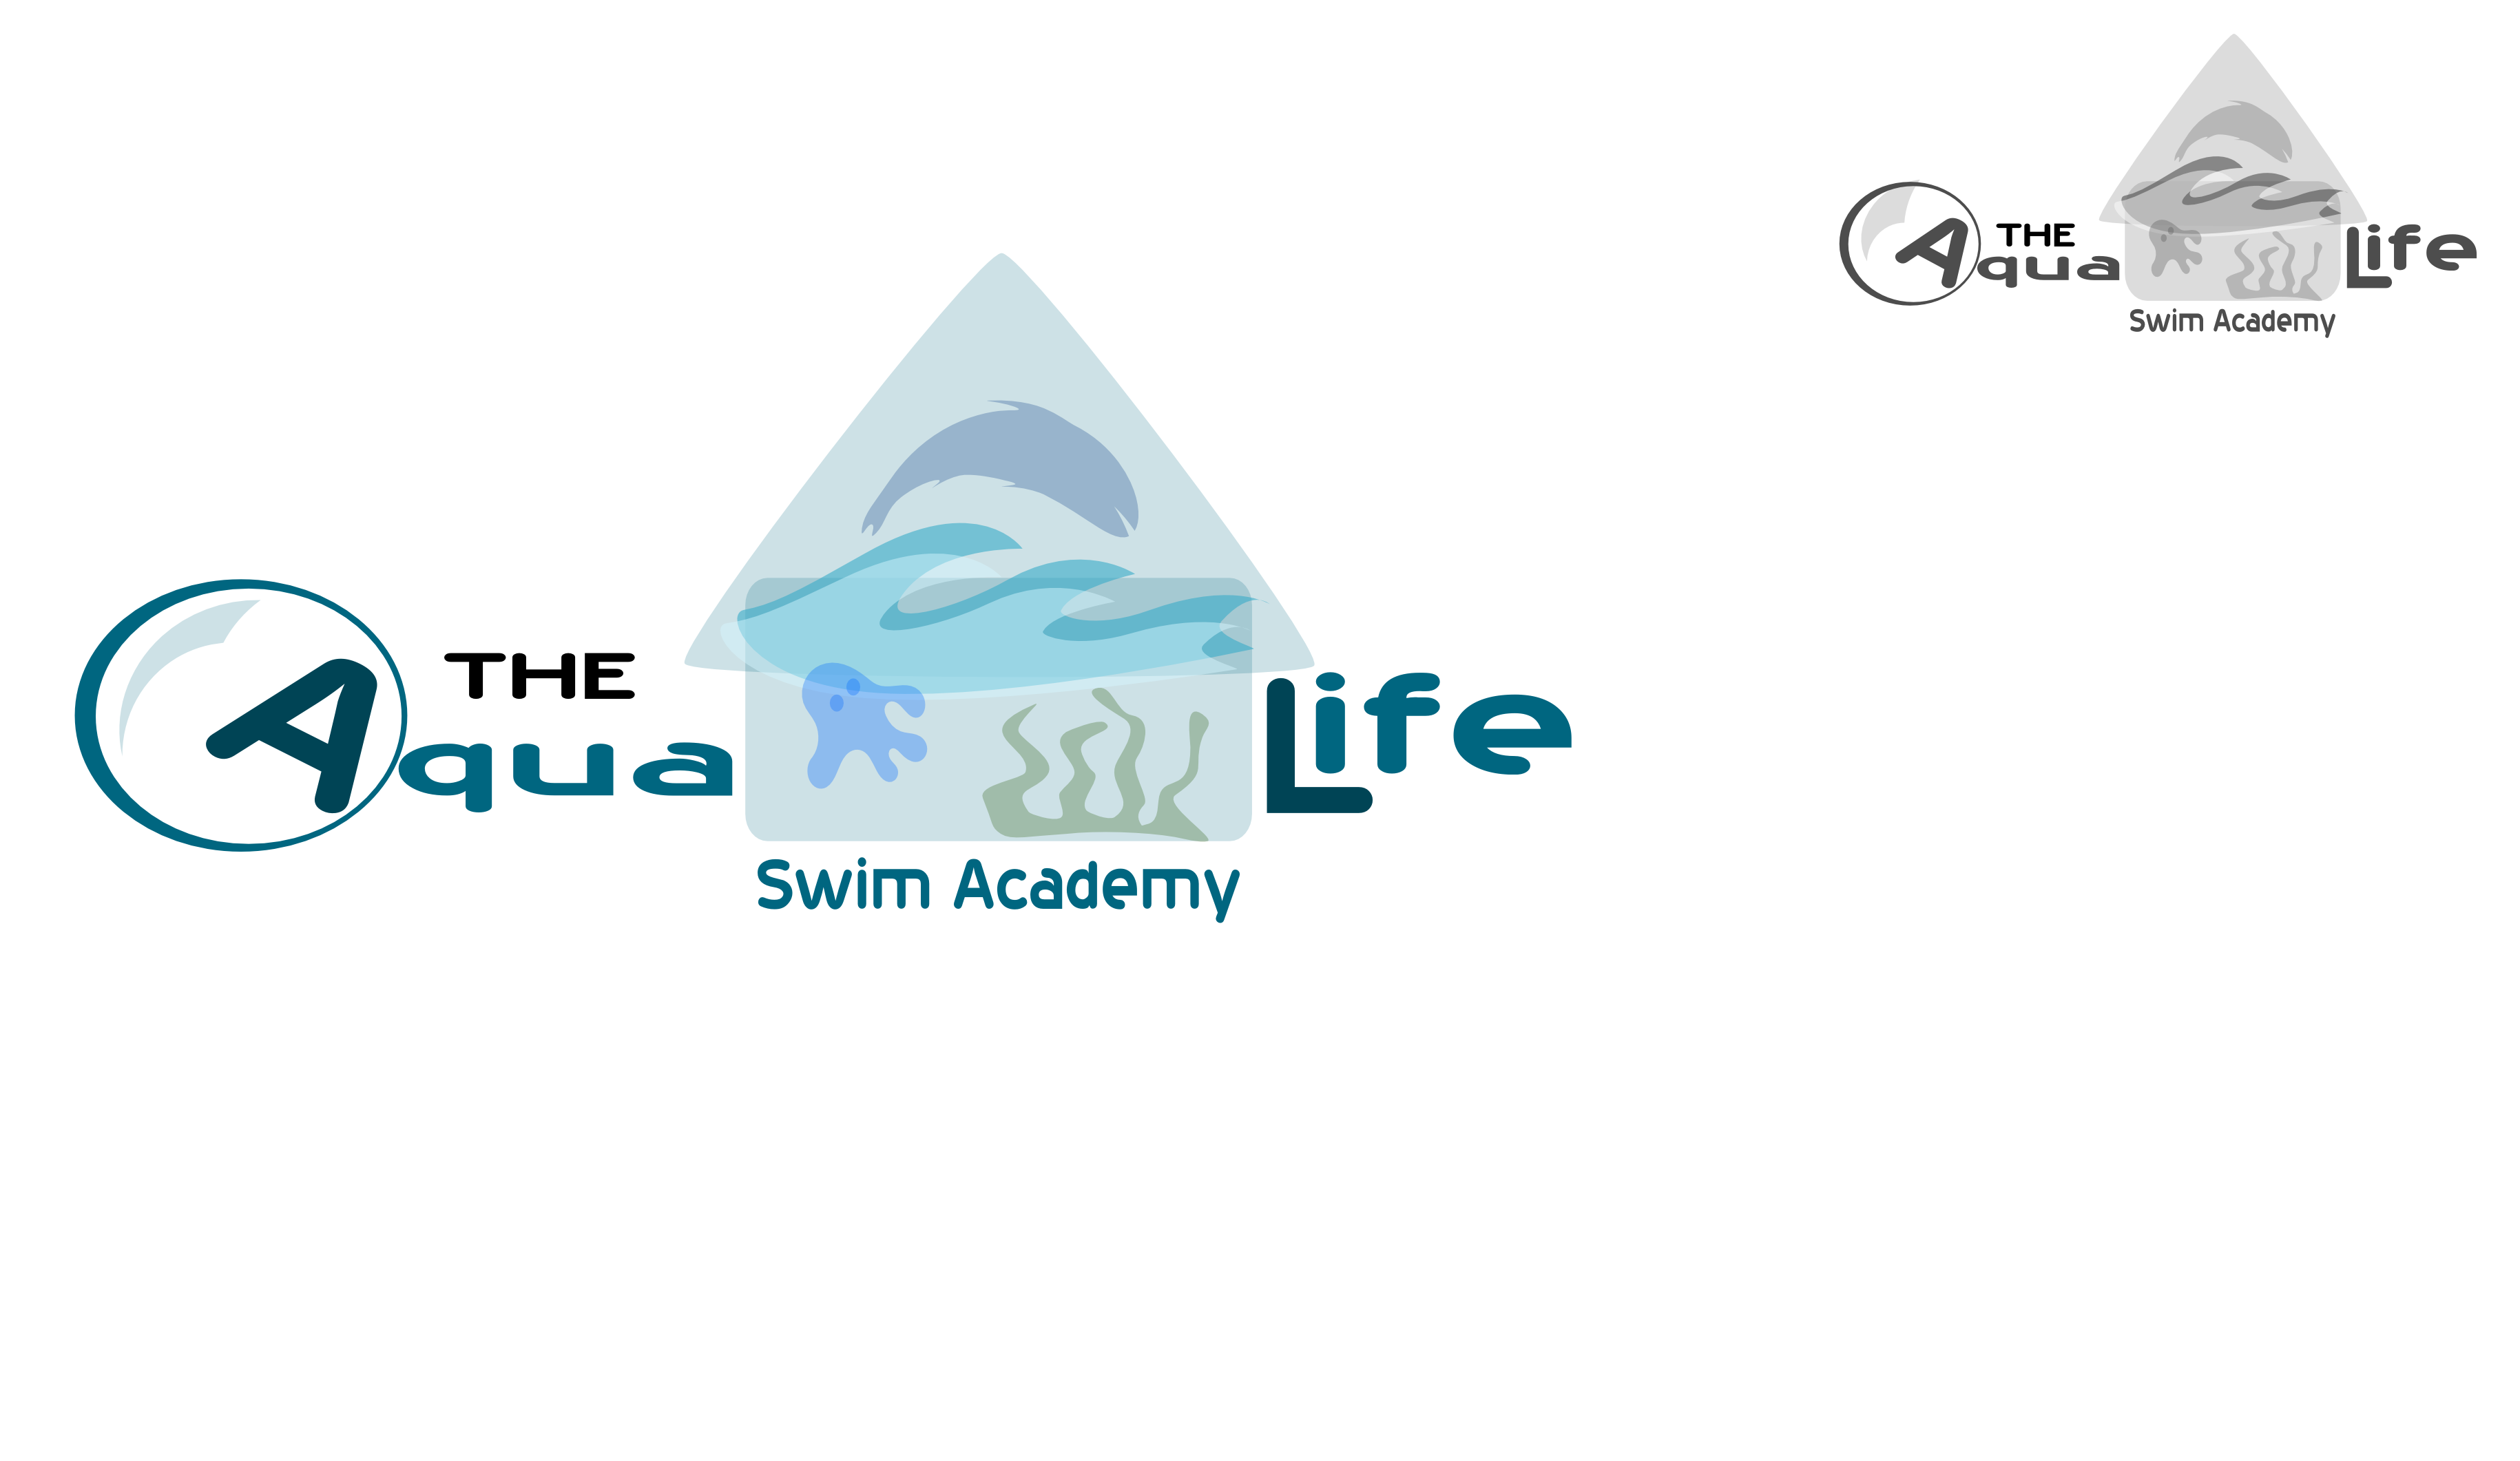 Logo Design by Arindam Khanda - Entry No. 123 in the Logo Design Contest Artistic Logo Design Wanted for The Aqua Life Swim Academy.